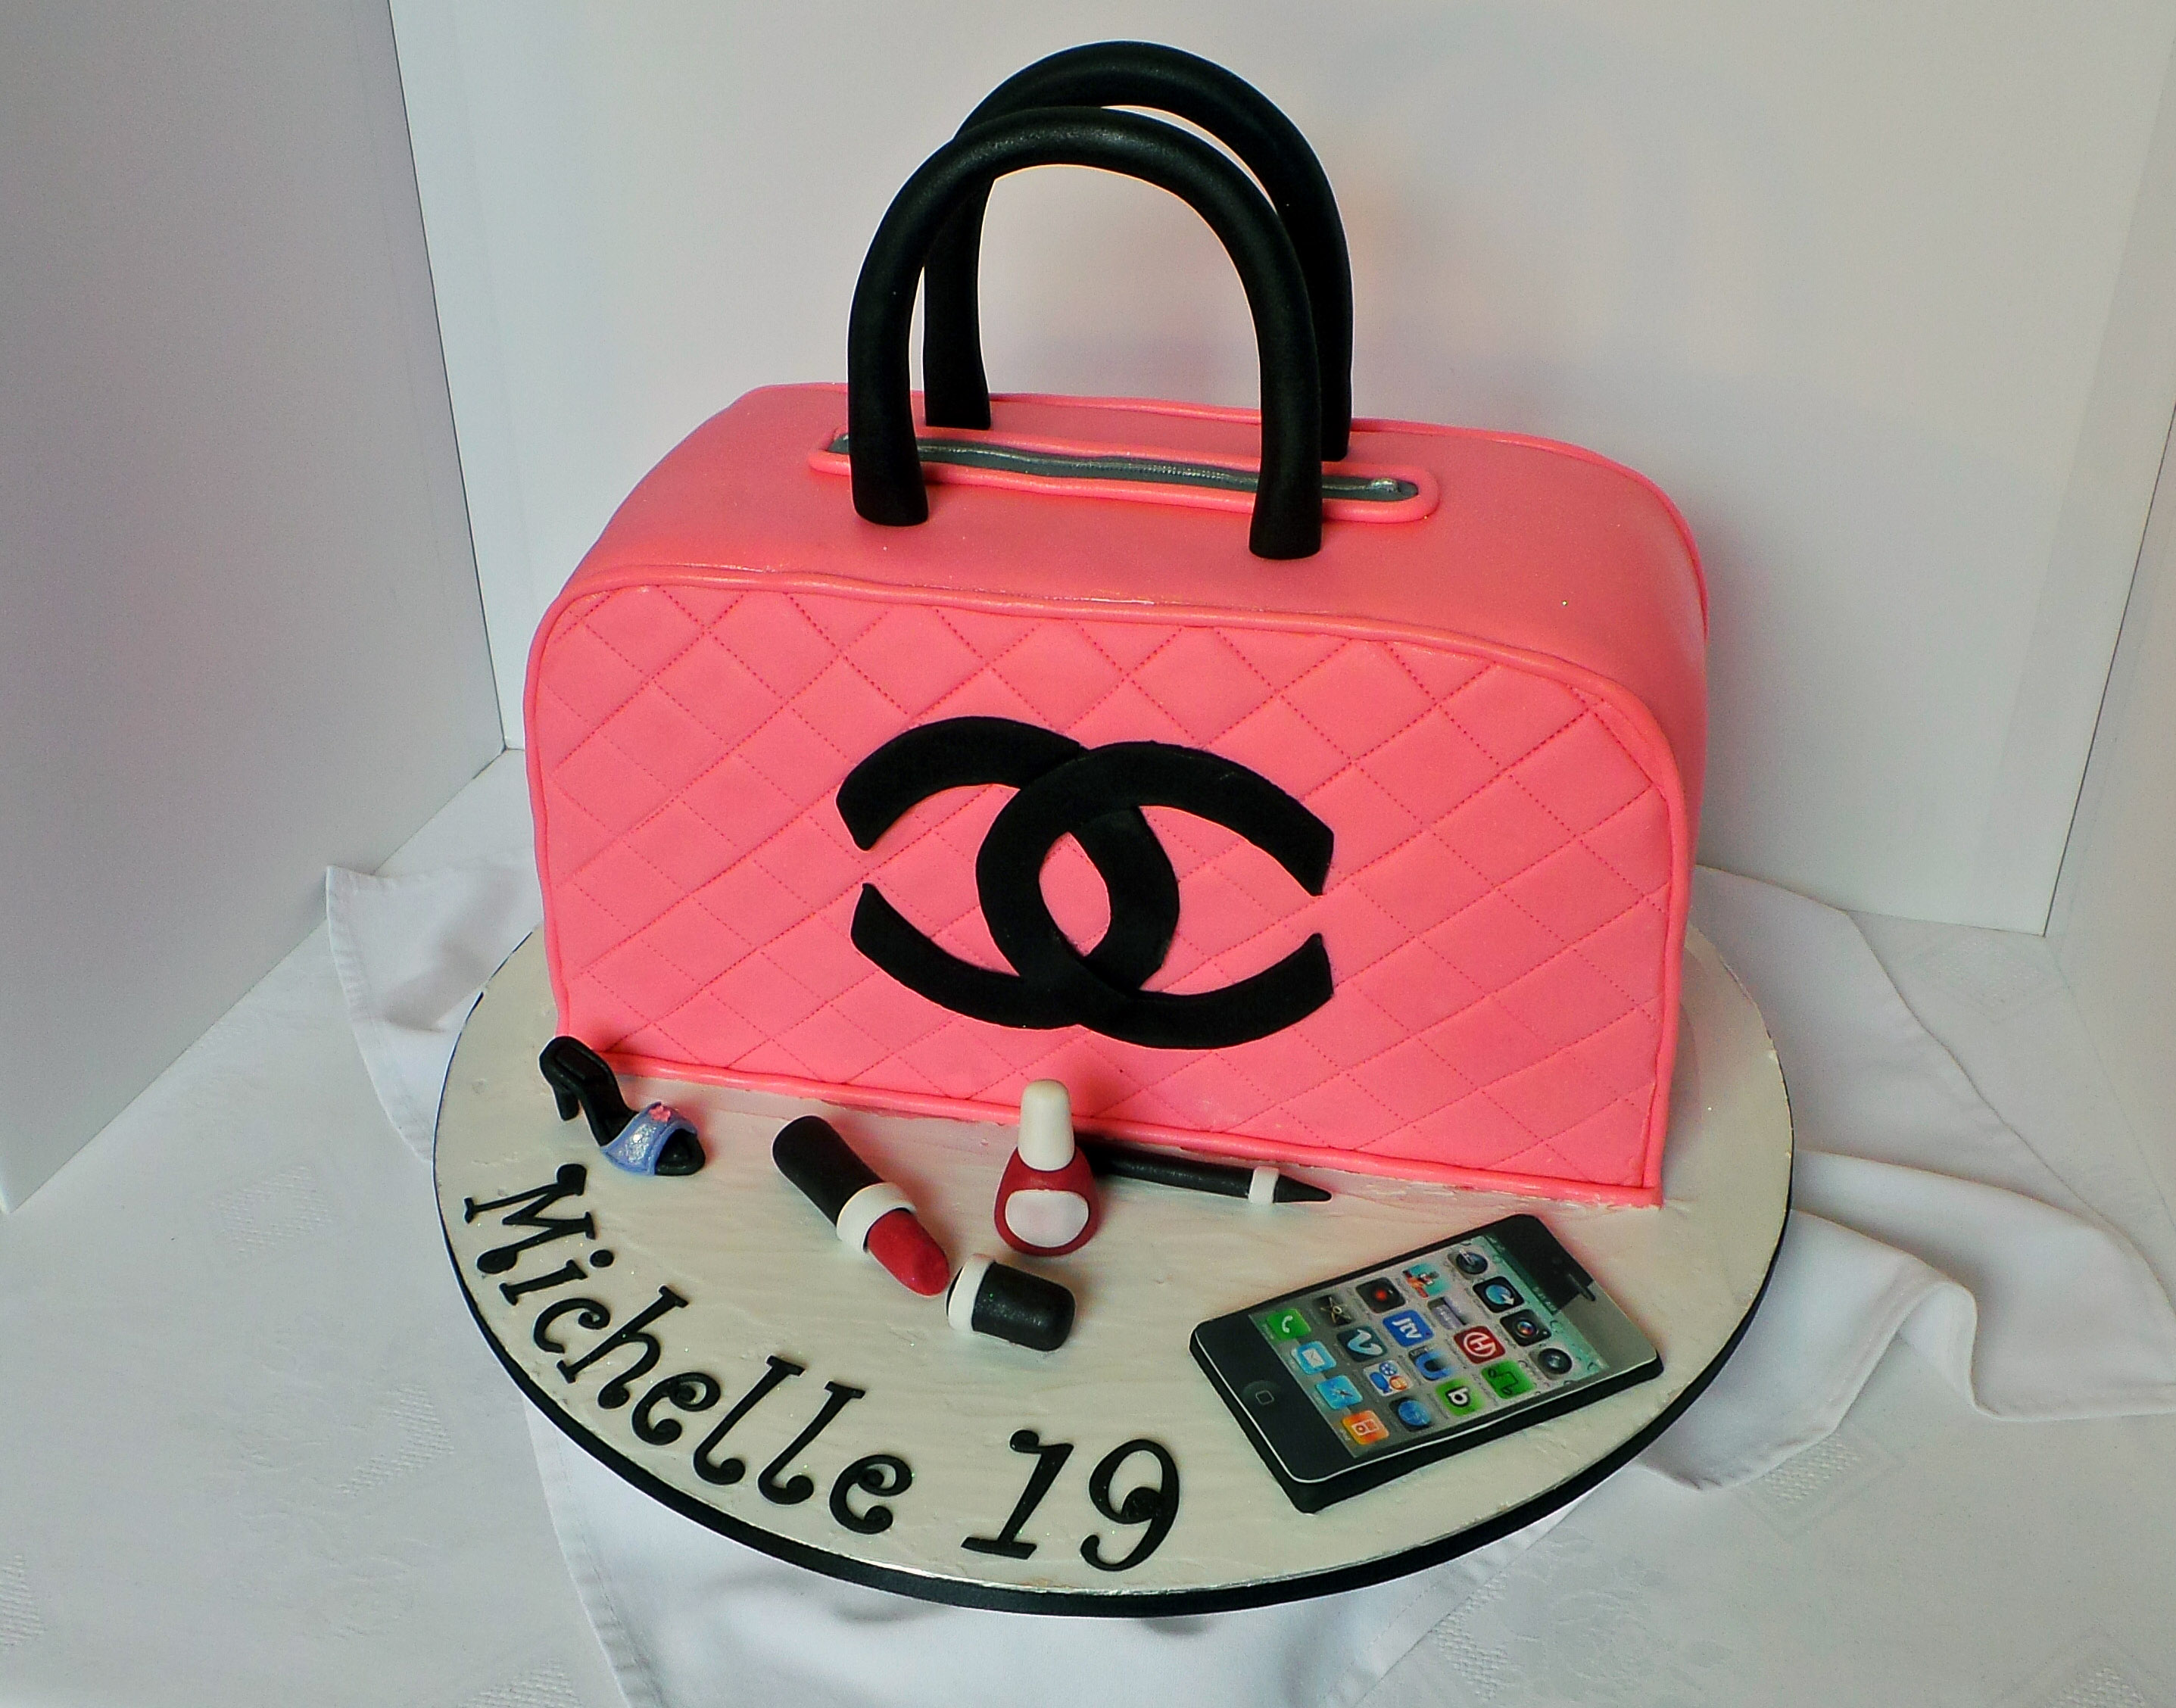 Designer Purse Birthday Cake